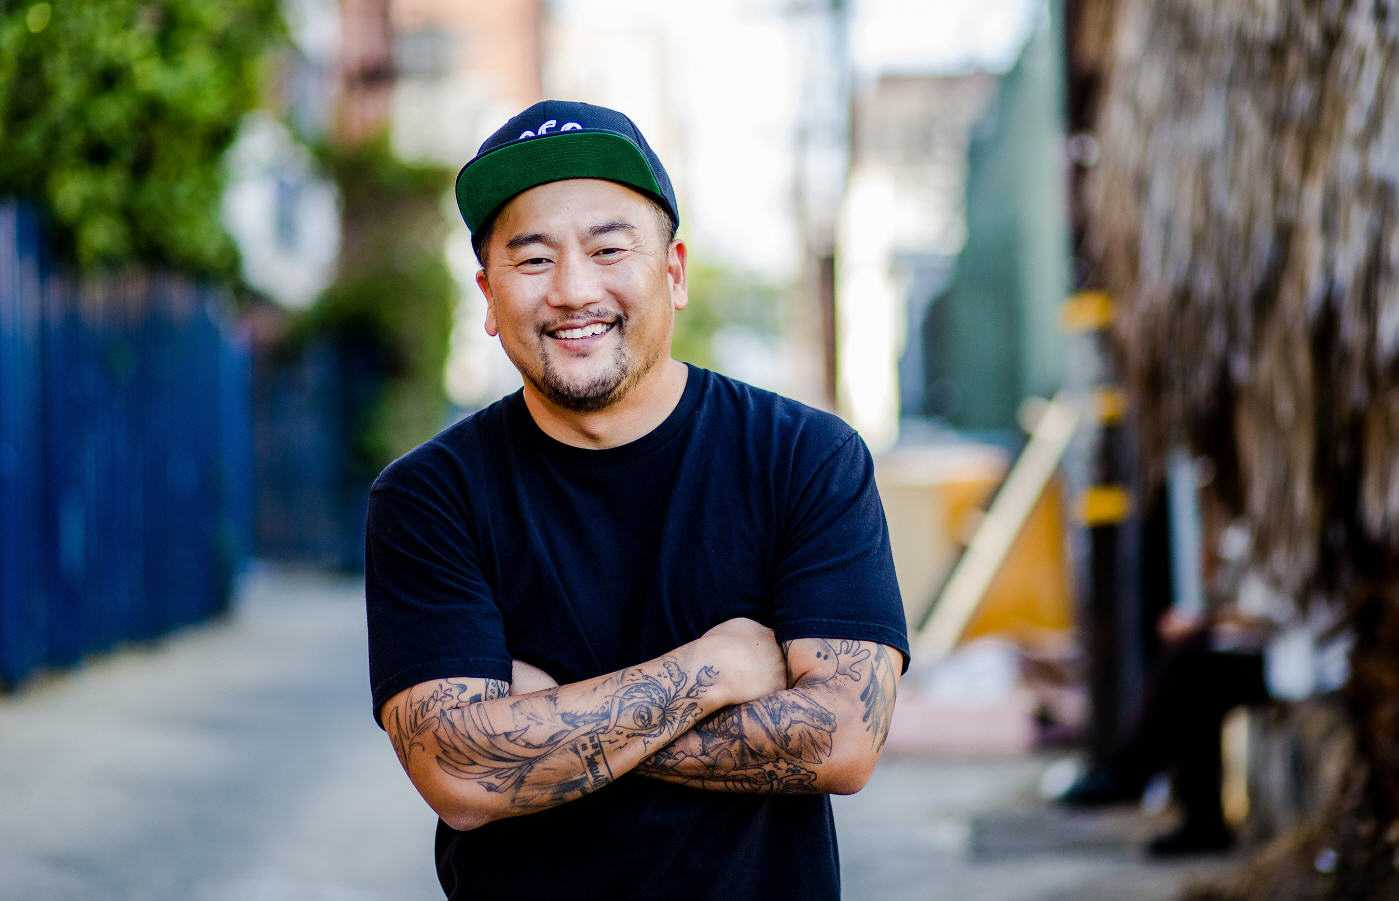 Cheetos Teaming with Famed Chef Roy Choi to Bring Signature LA Style to the Flamin' Hot Cheetos-Inspired Menu